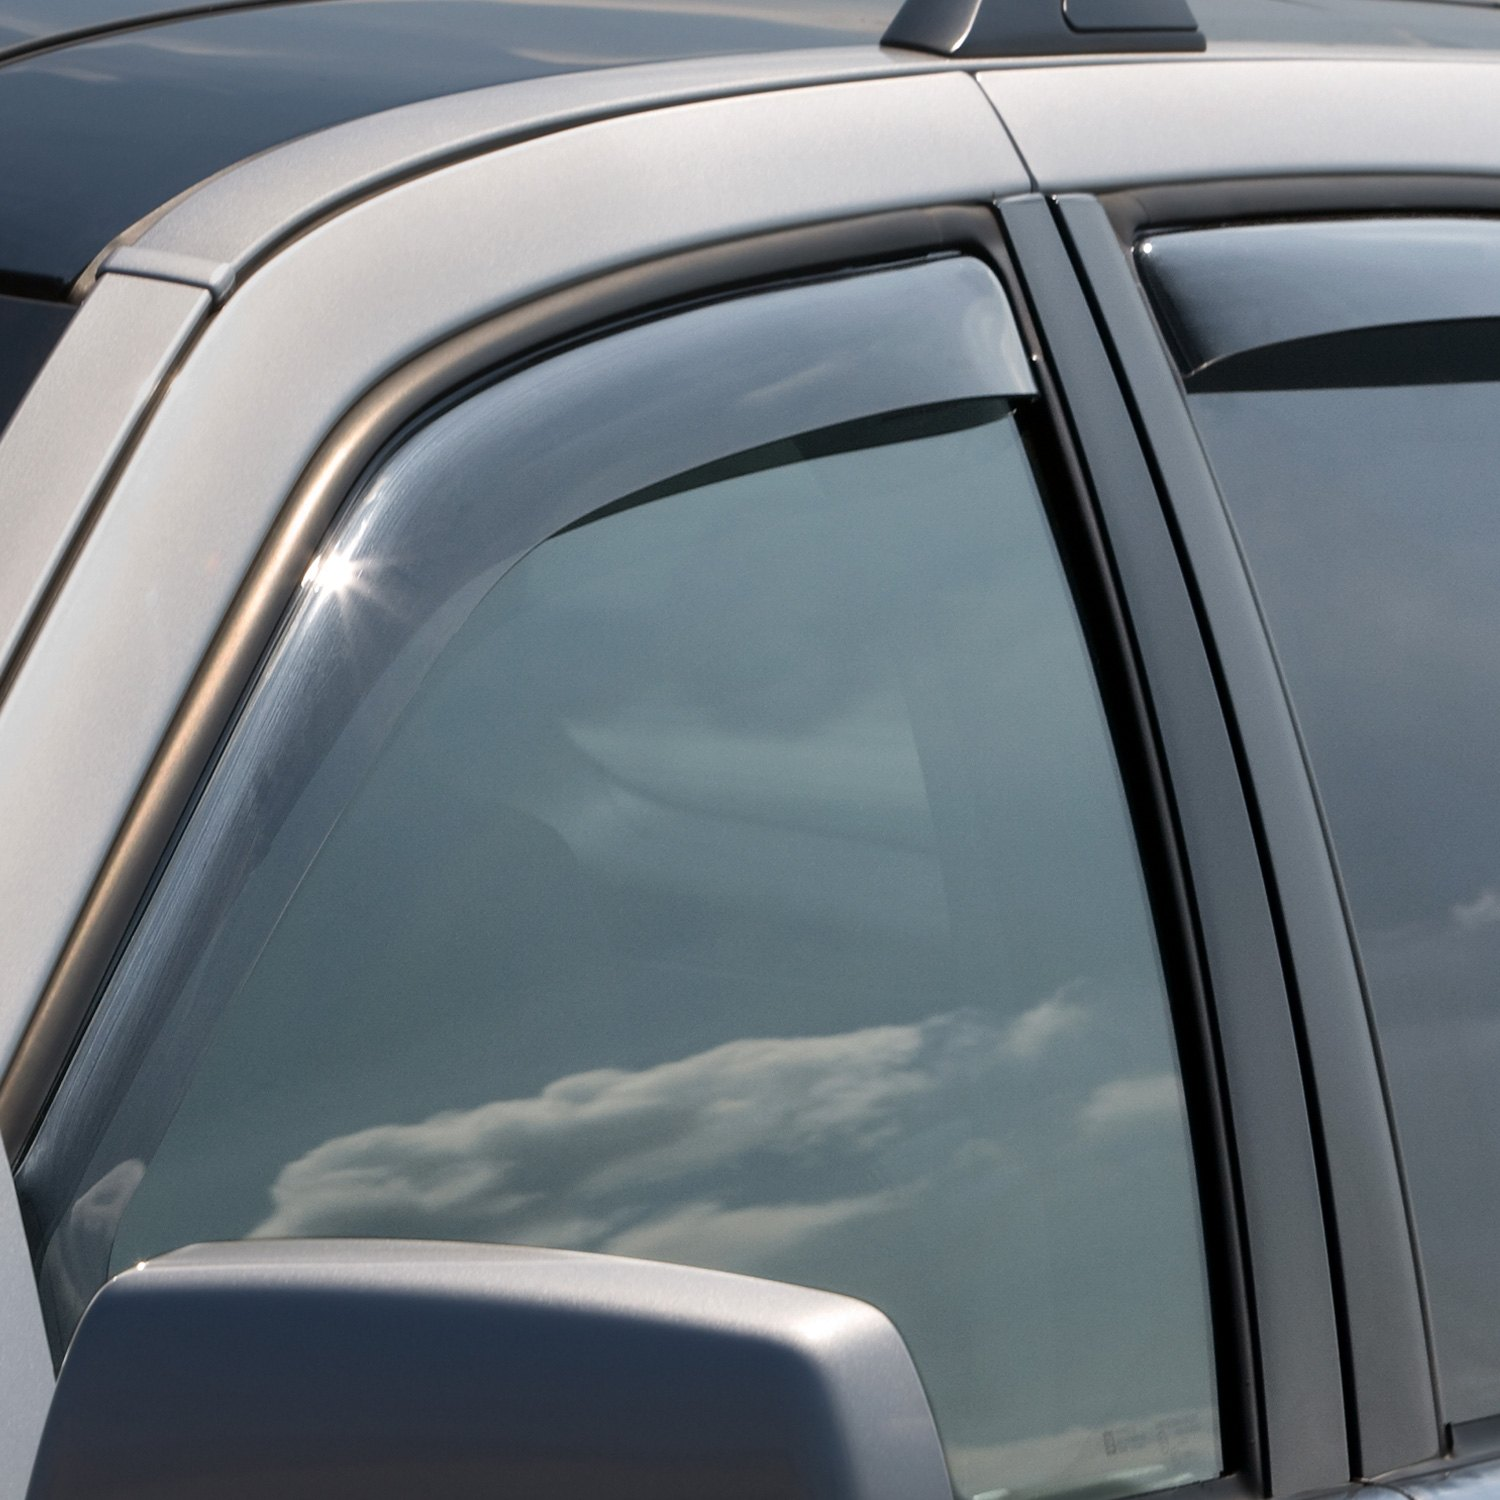 WeatherTech Custom Fit Front and Rear Side Window Deflectors for Toyota Camry Sedan Dark Smoke